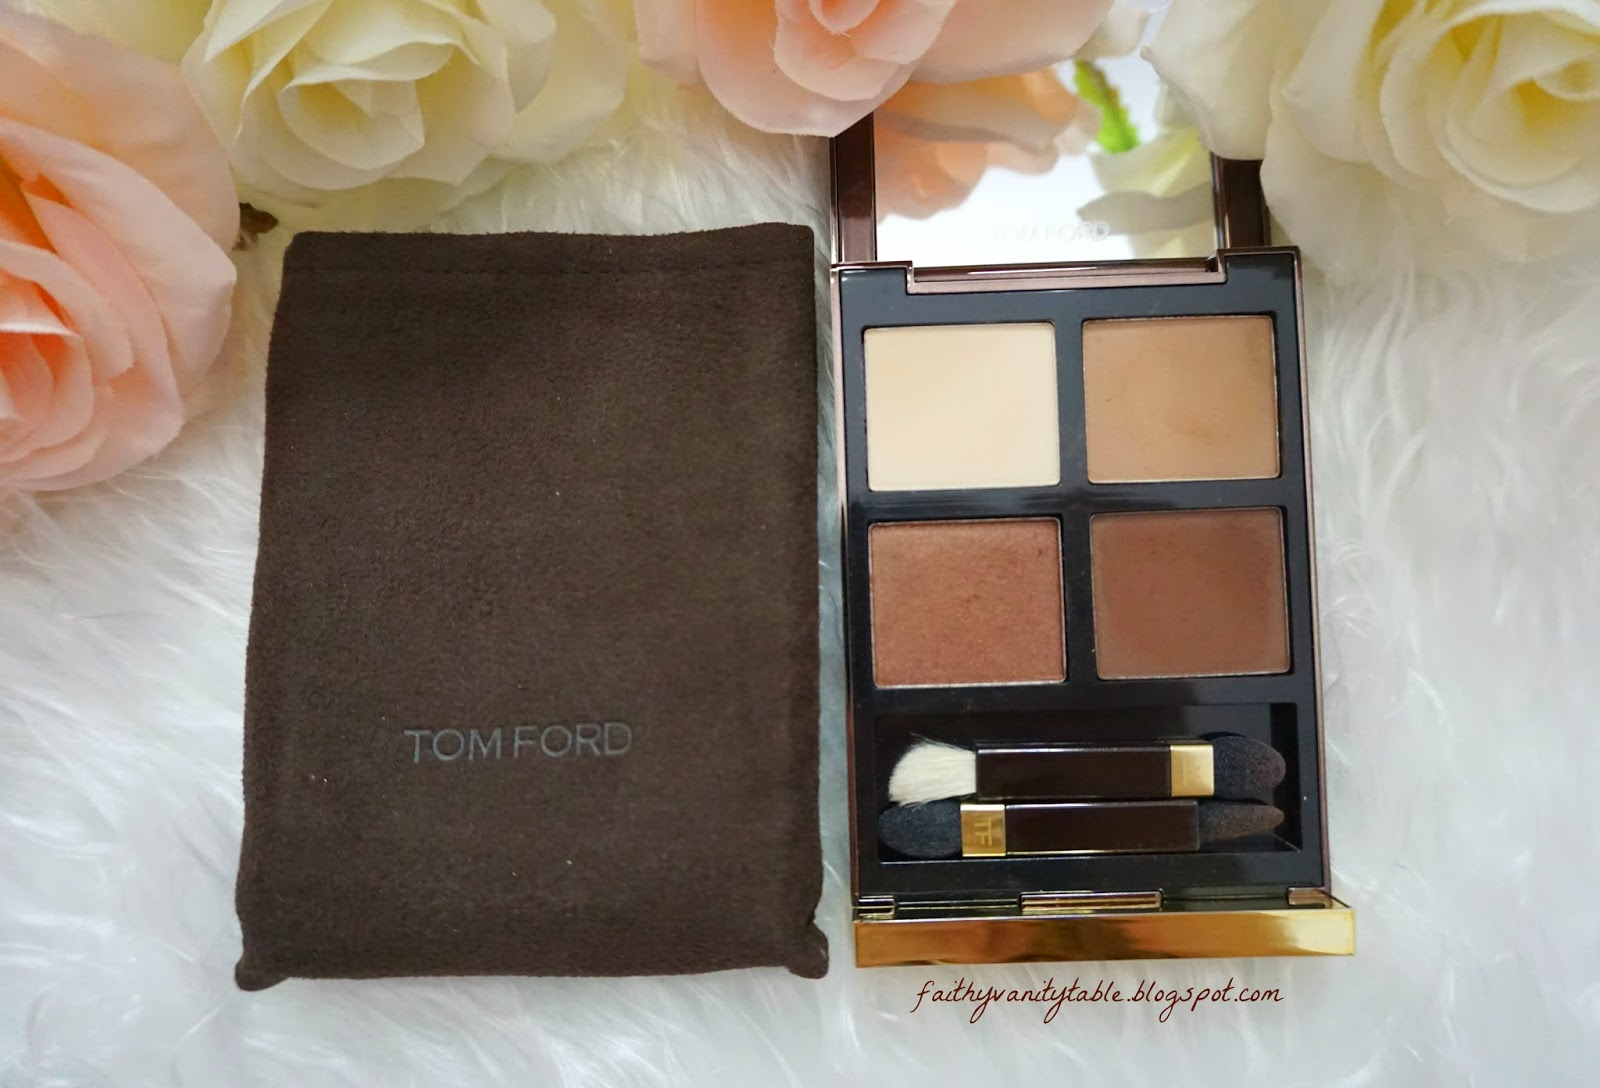 Review of Tom Ford Eyeshadow Quad, Cocoa Mirage